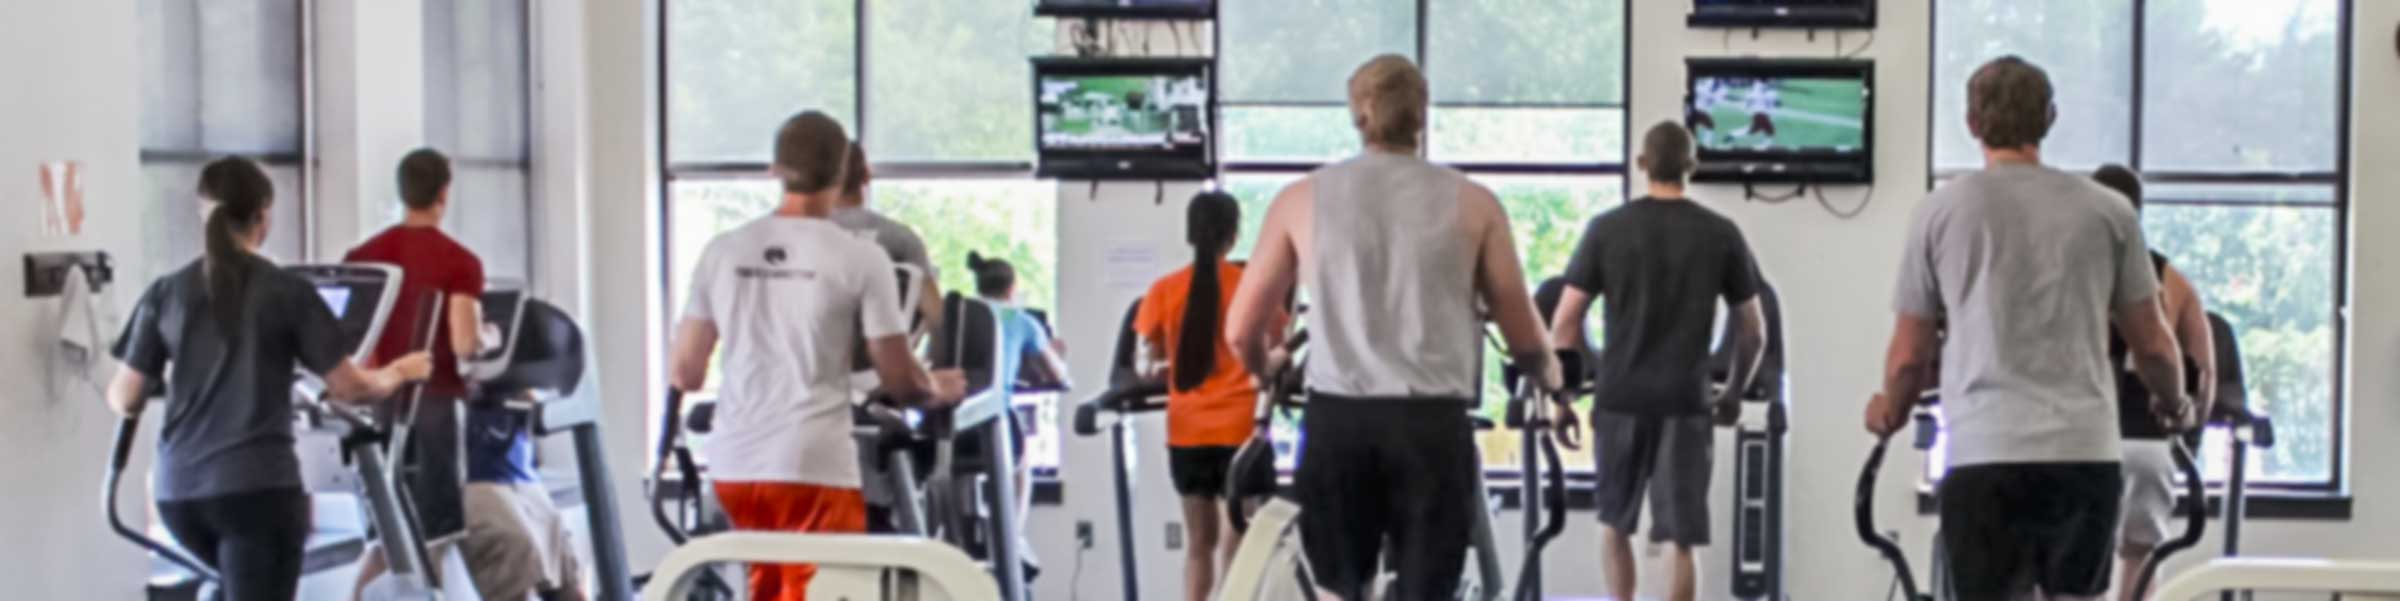 Wellness Center header